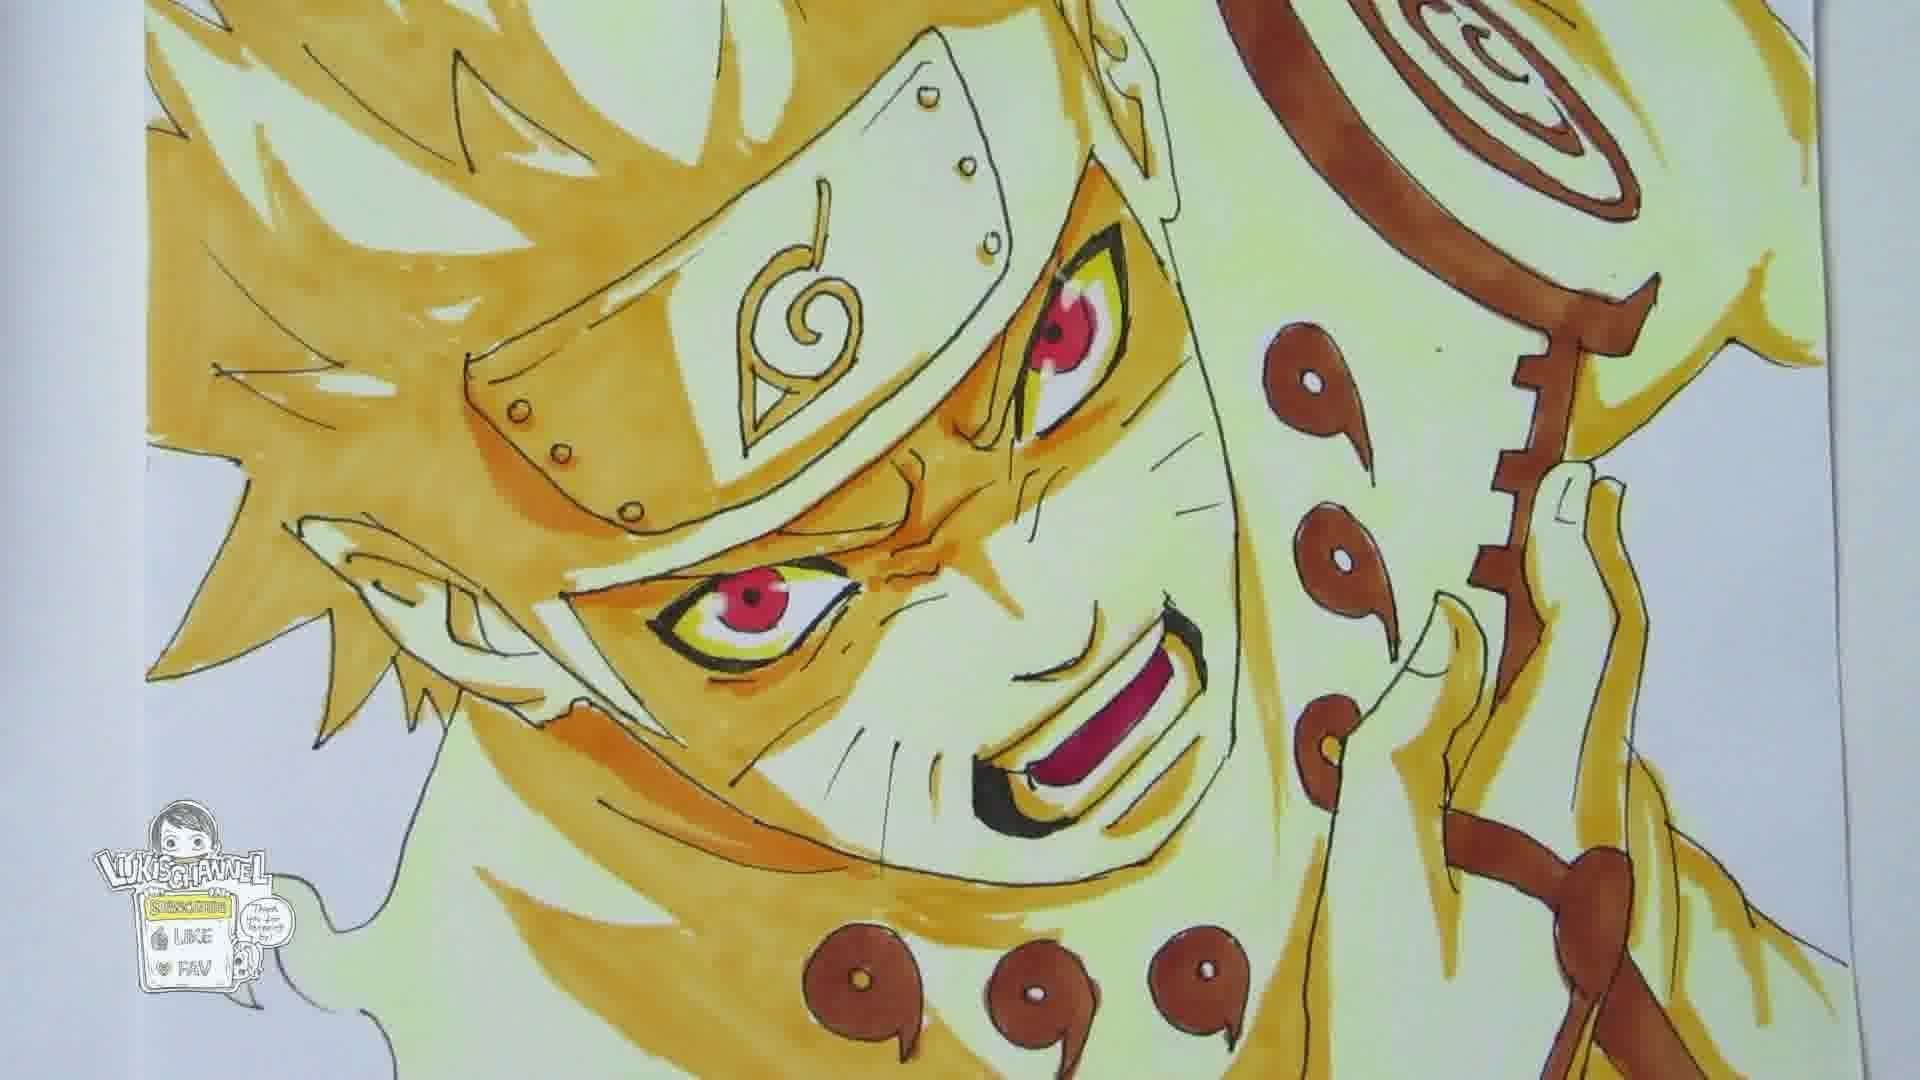 Pictures of How To Draw Naruto Kyuubi Mode - #rock-cafe